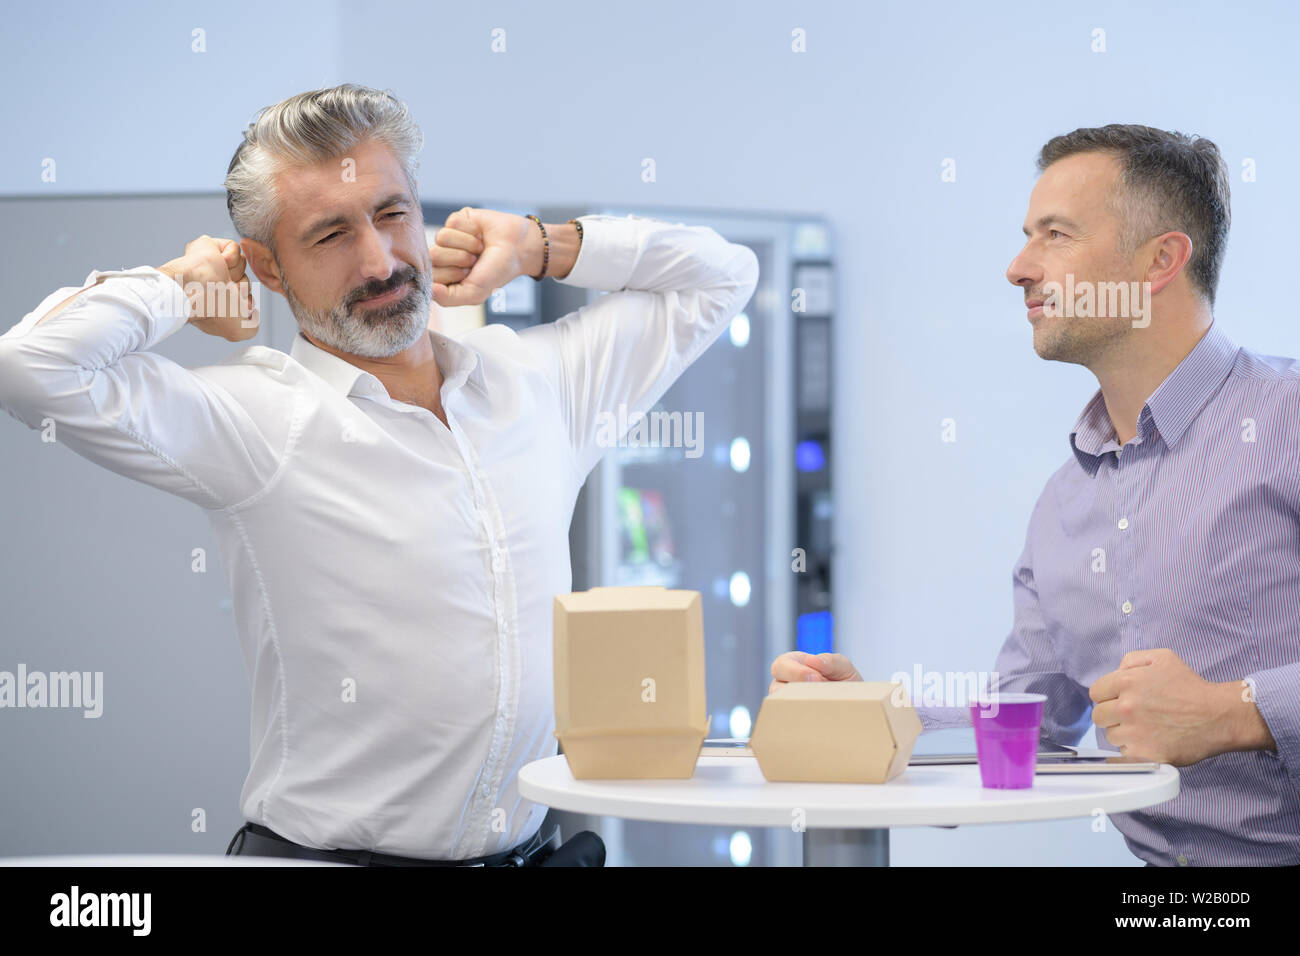 businessmen with takeaway fast-food cartons one stretching - Stock Image